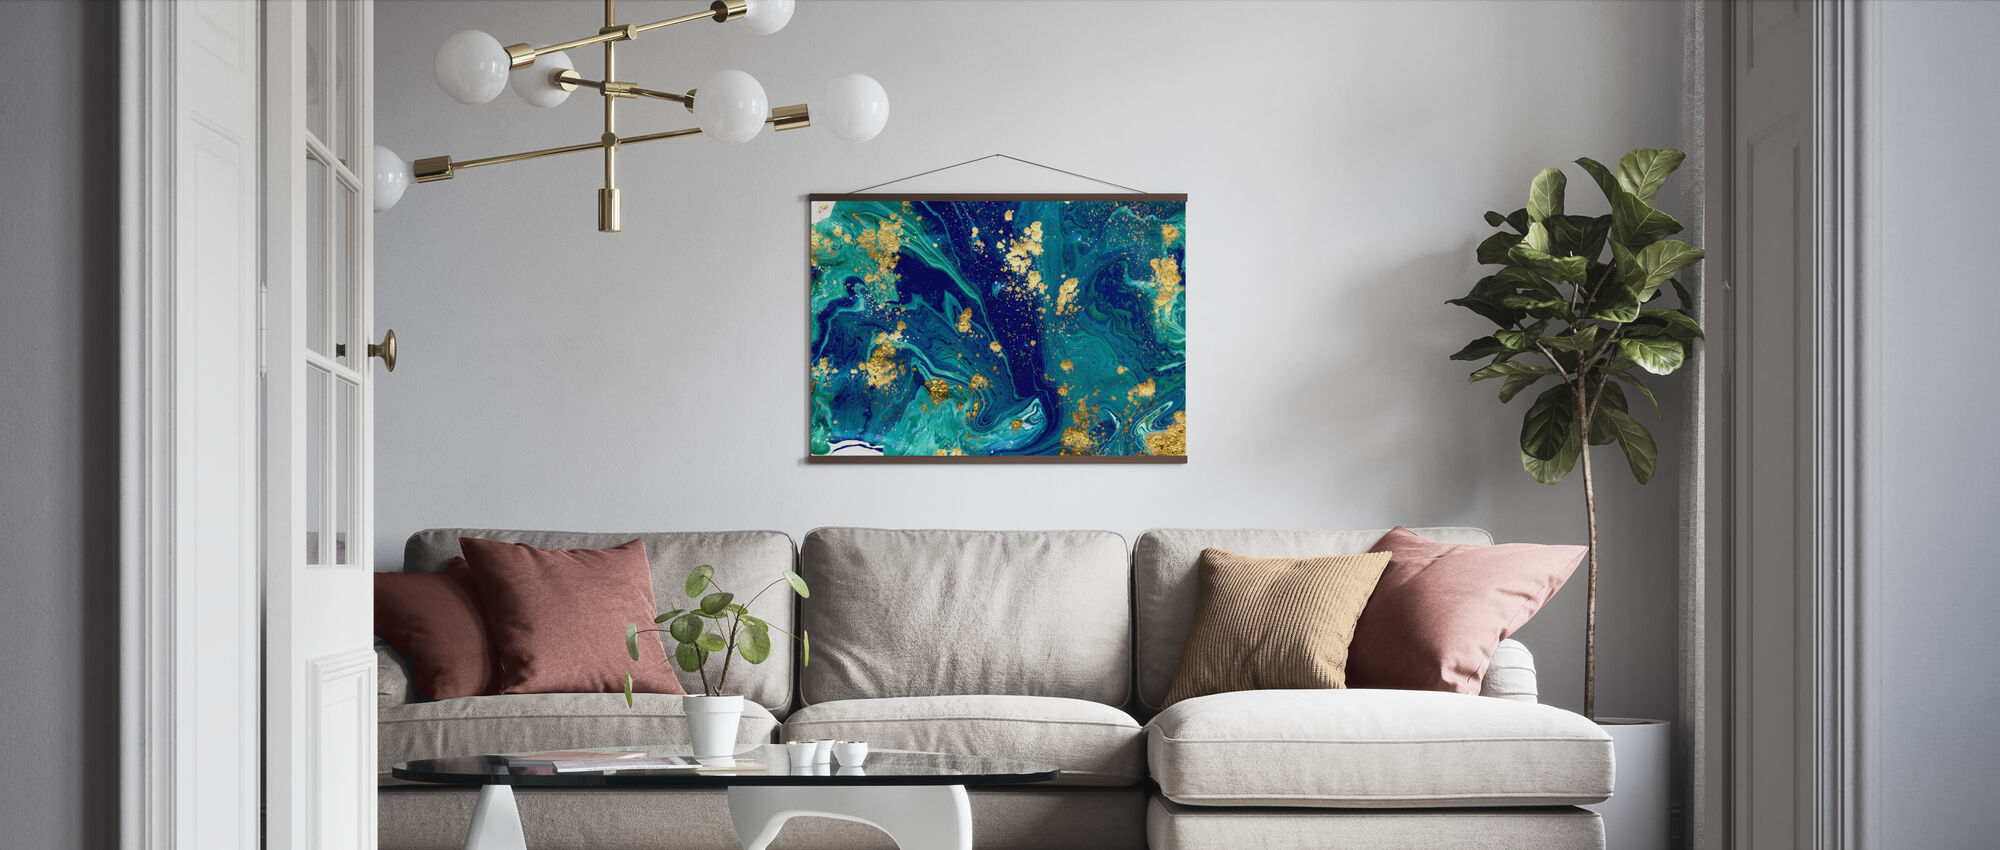 Blue Liquid Marble - Poster - Living Room